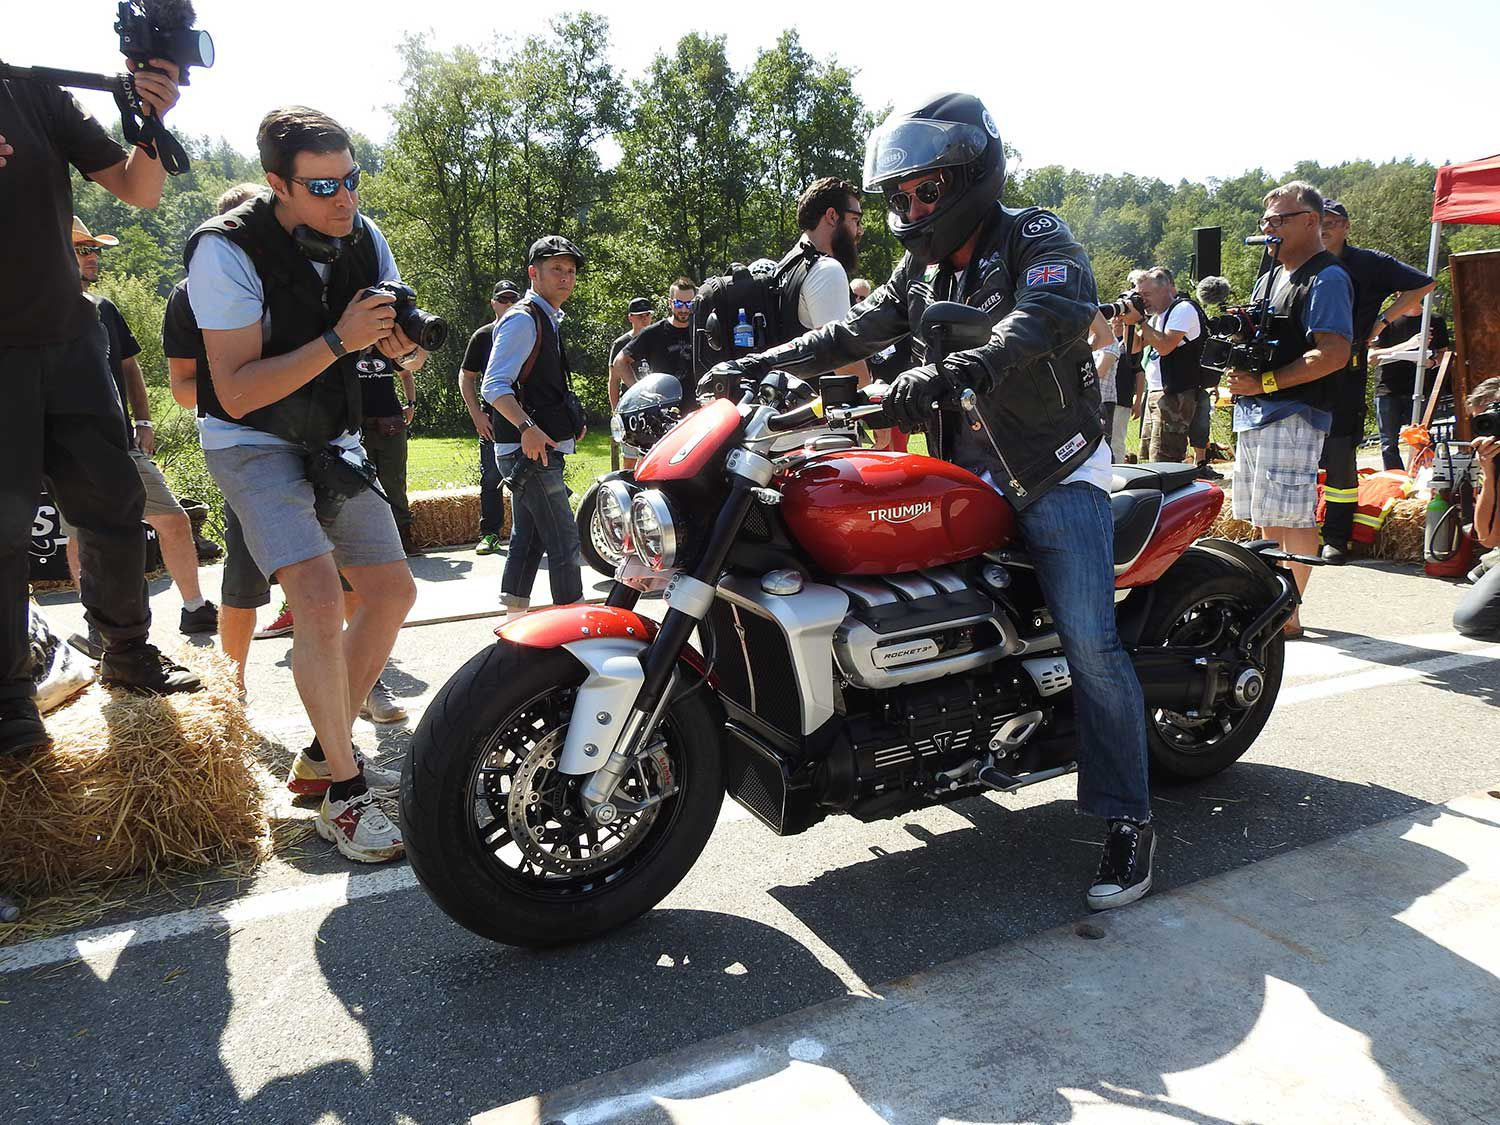 Triumph's new 2,500cc Rocket was on show in Germany for the first time and getting ready for its maiden demo run.